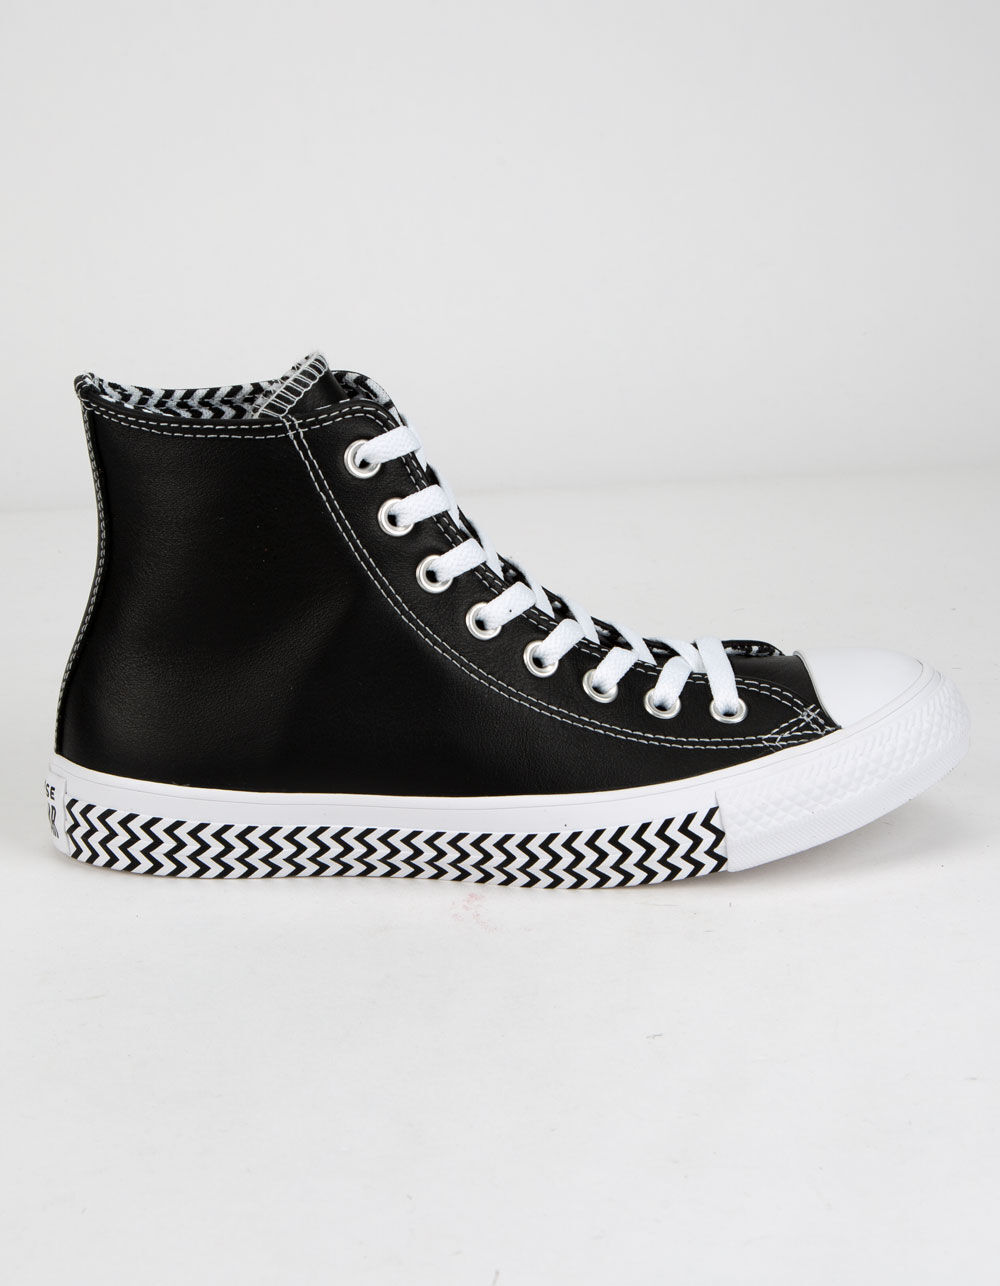 CONVERSE Mission V High Top Black & White Shoes